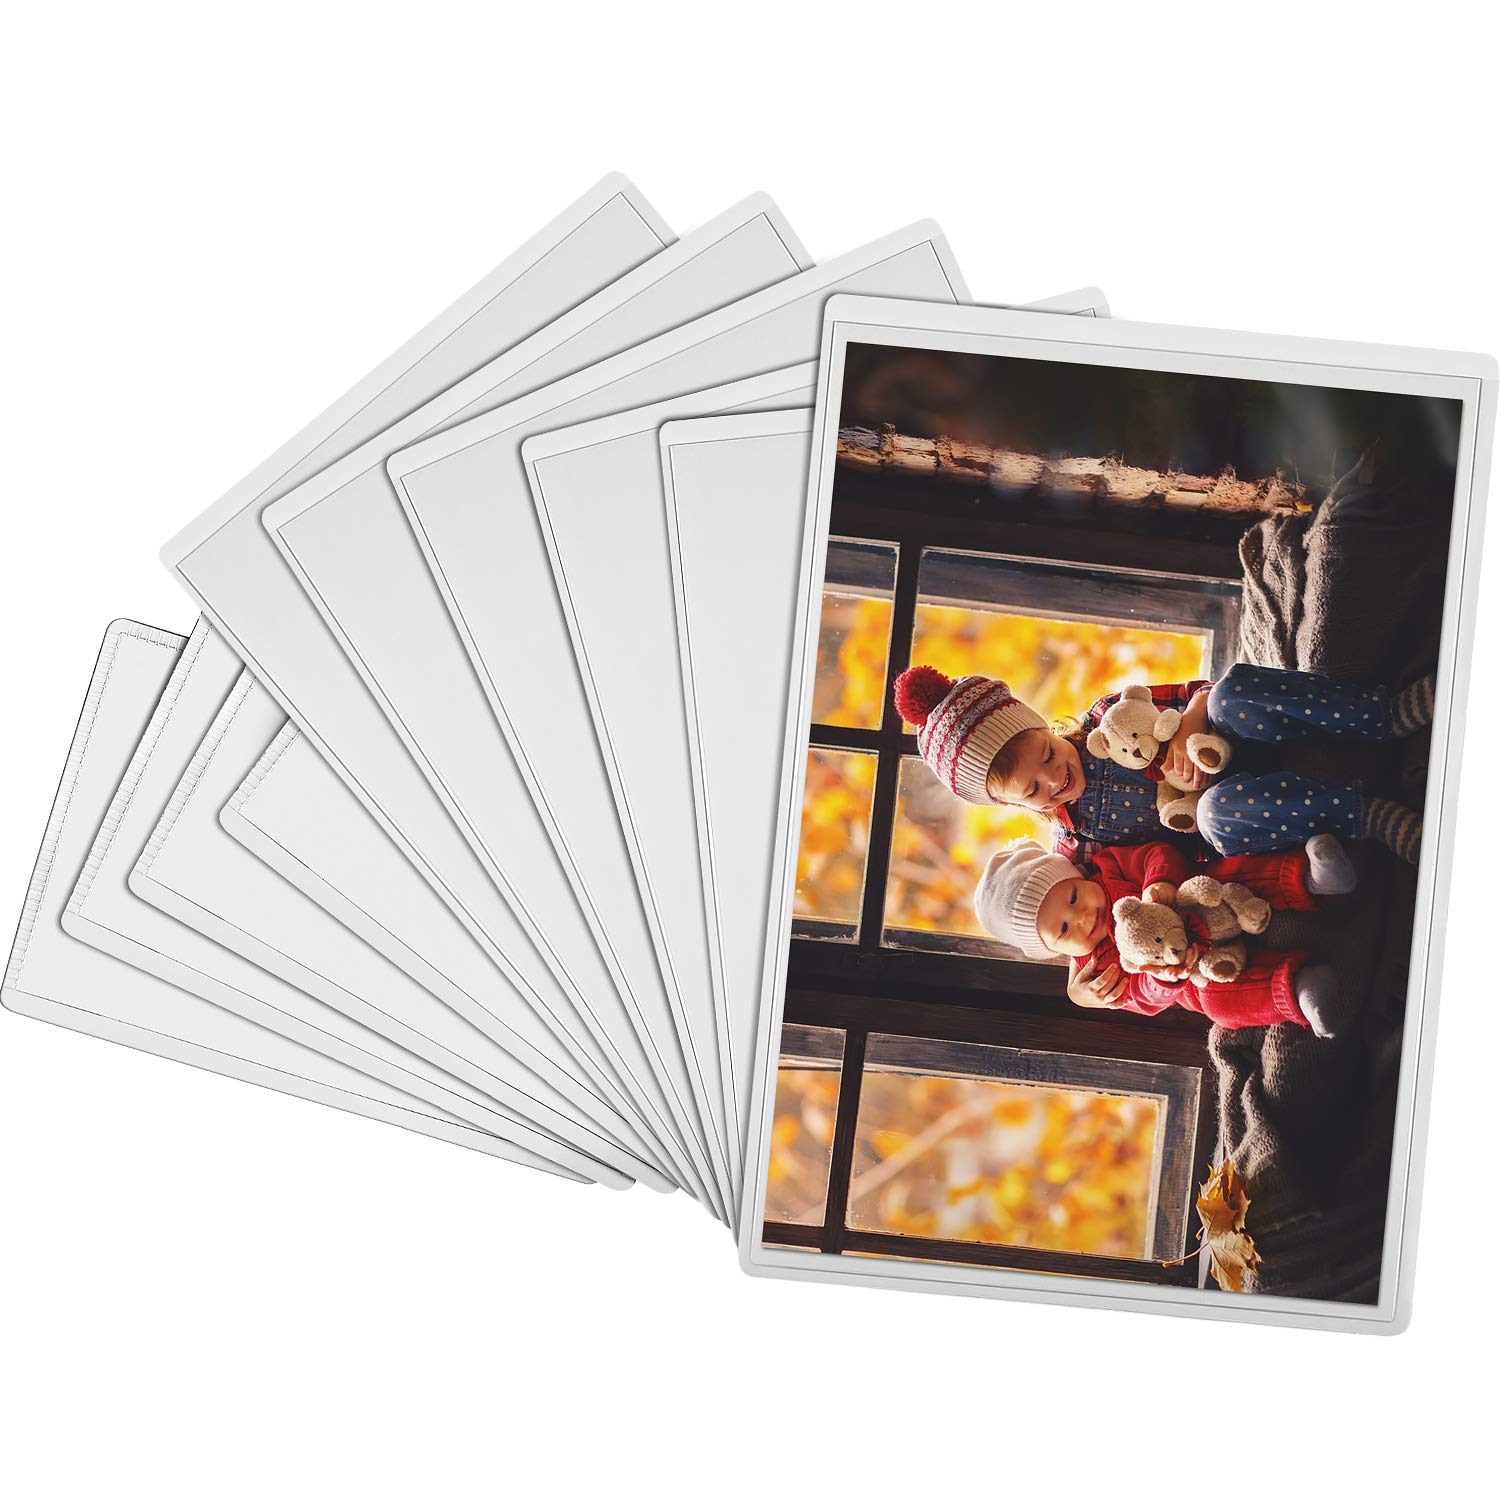 Tatuo 10 Pieces Magnetic Photo Pocket Picture Frame, Clear Photo Pocket Sleeve for Fridge, Locker, Office Cabinet